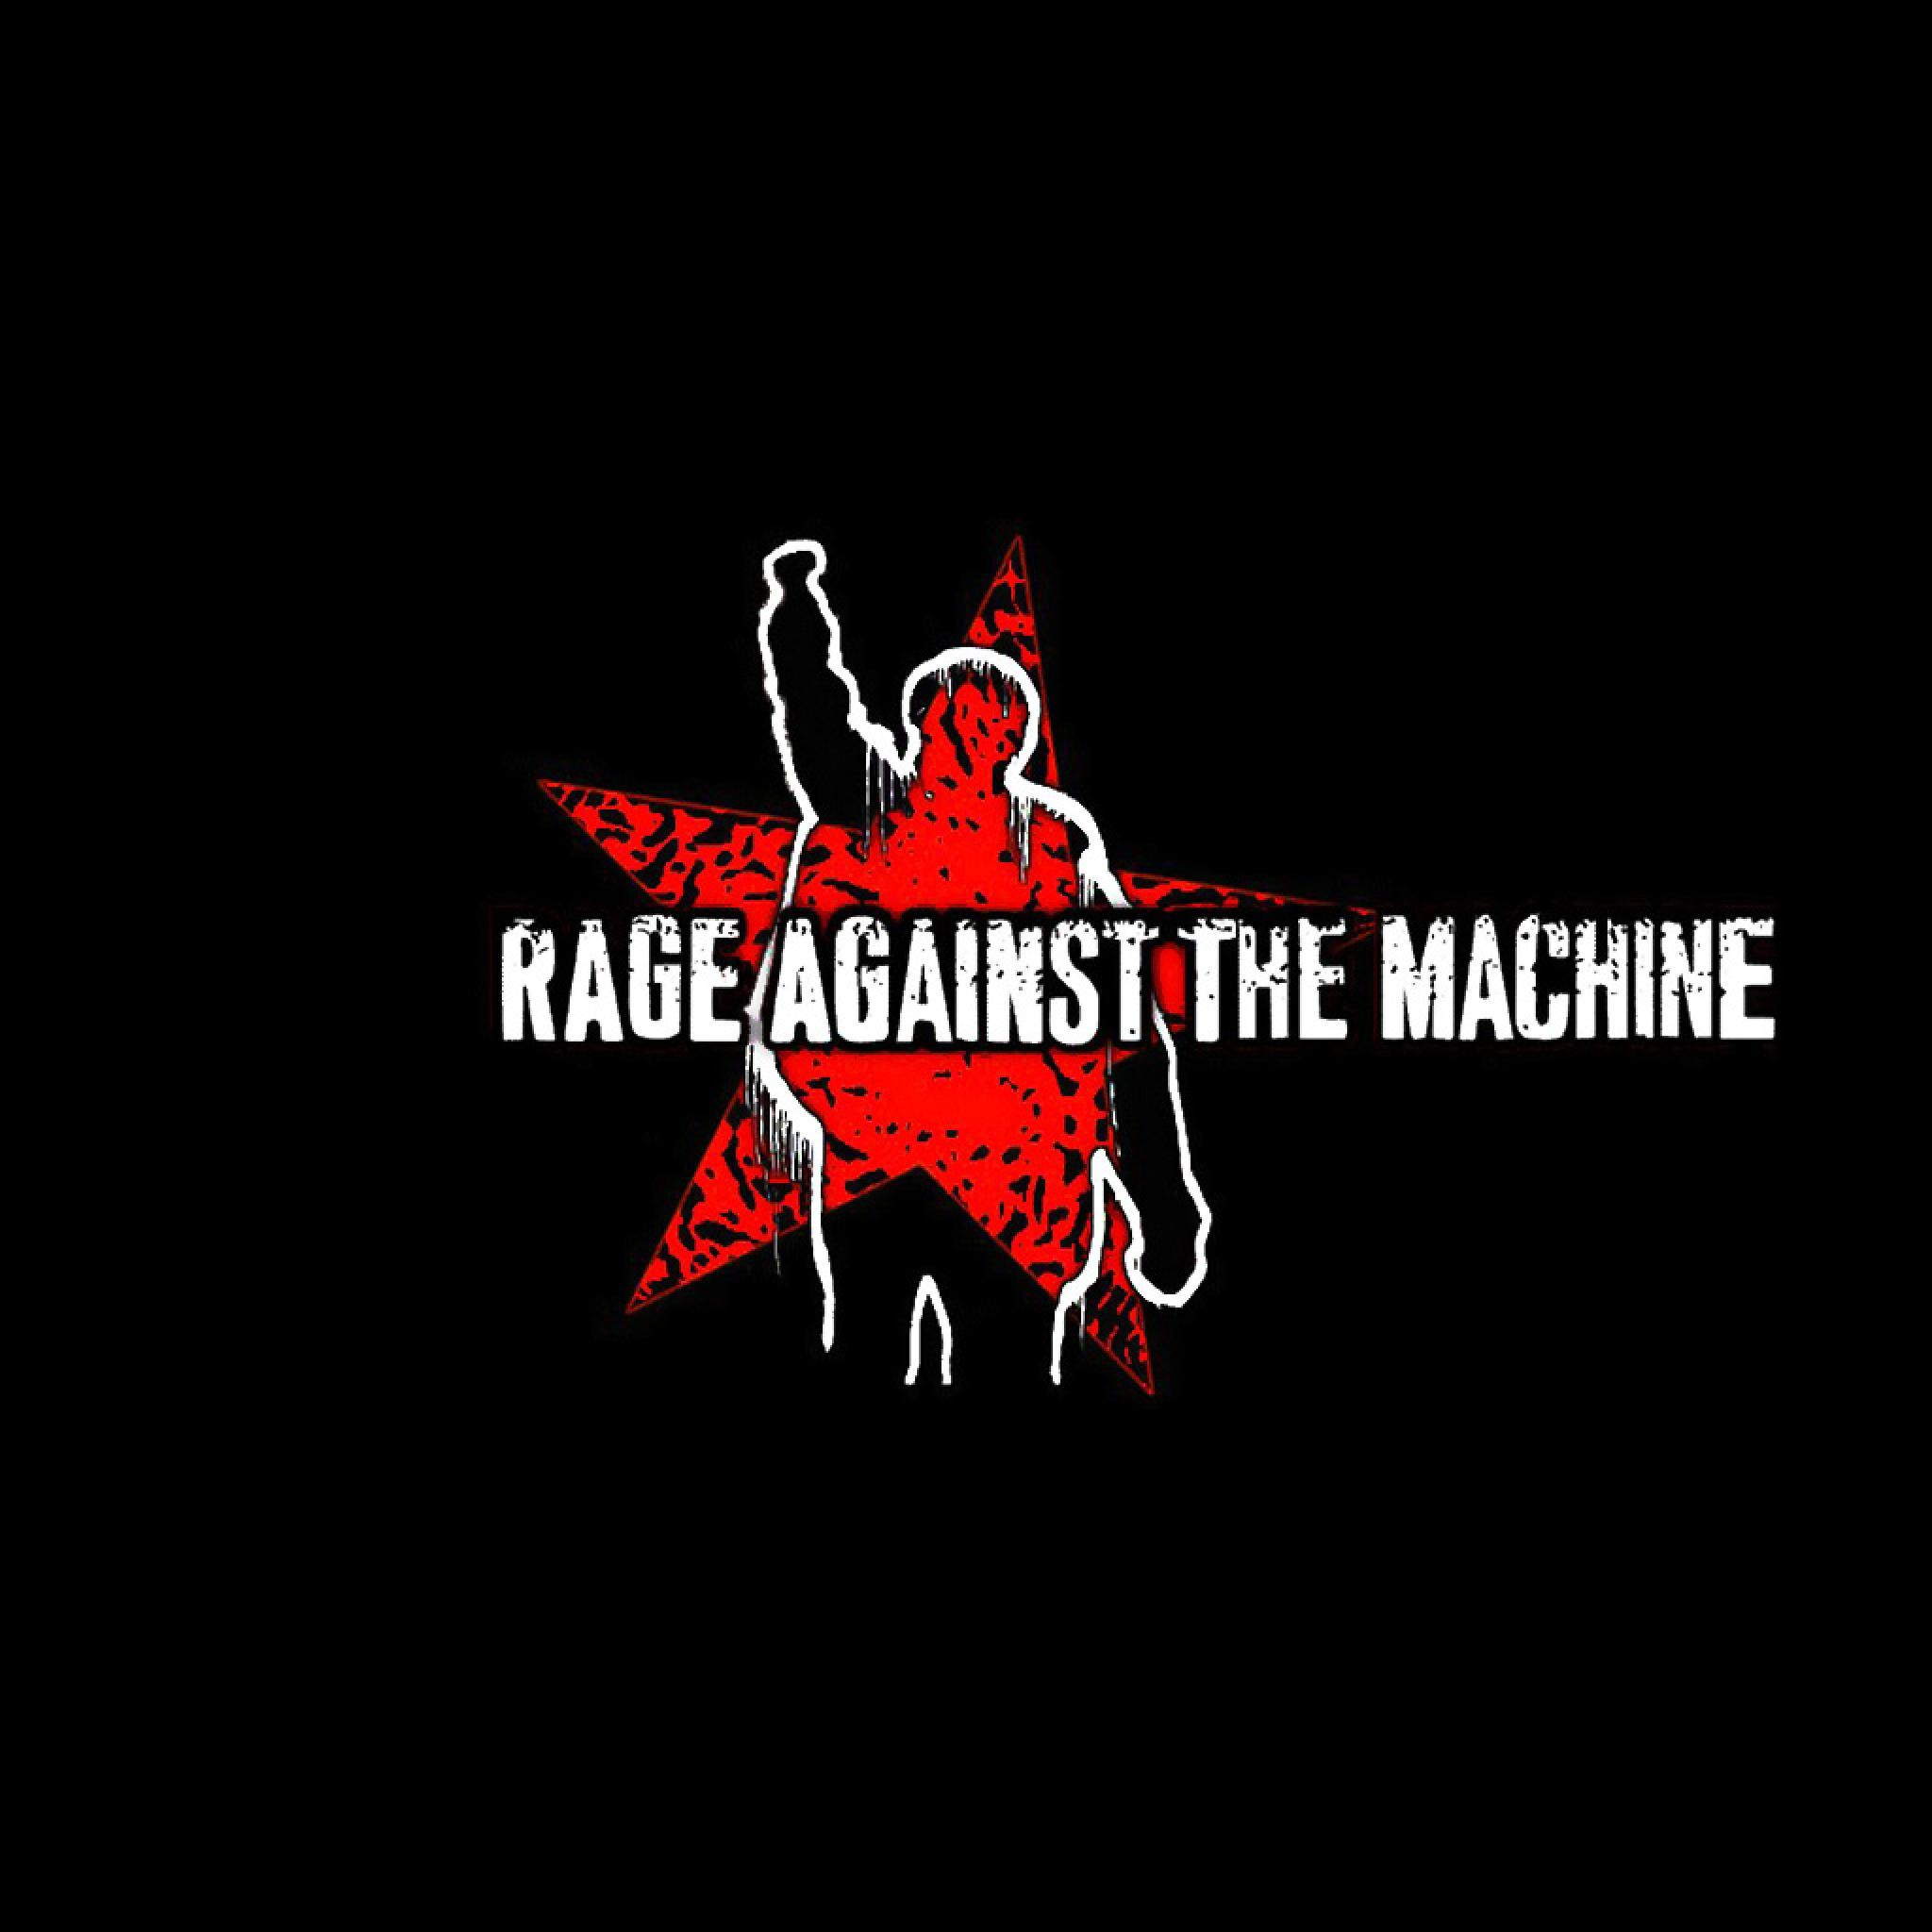 Rage Against Quotes: Rage Against The Machine Wallpapers (70+ Images